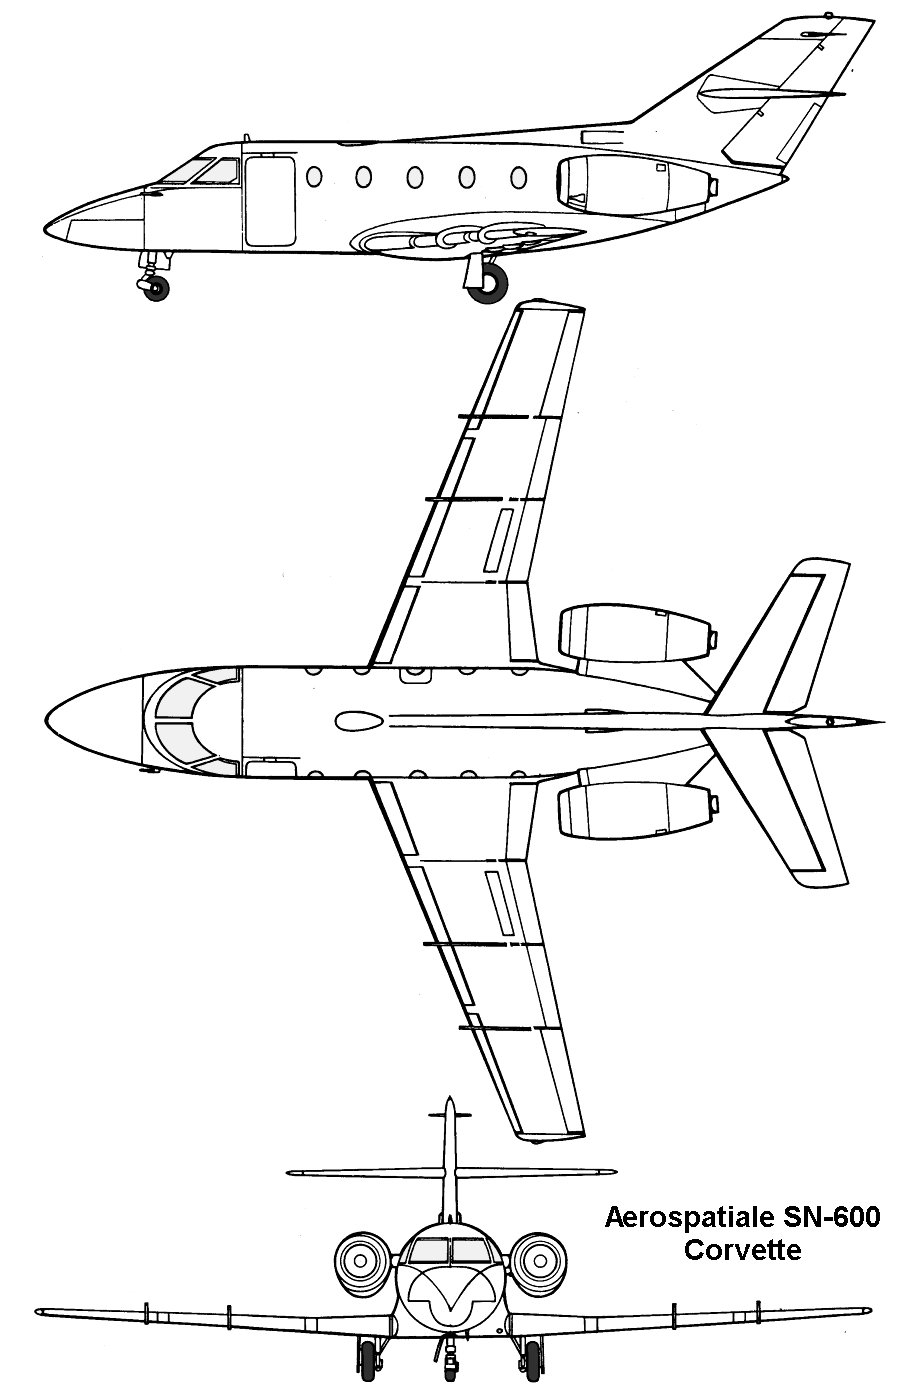 Aerospatiale Corvette blueprint